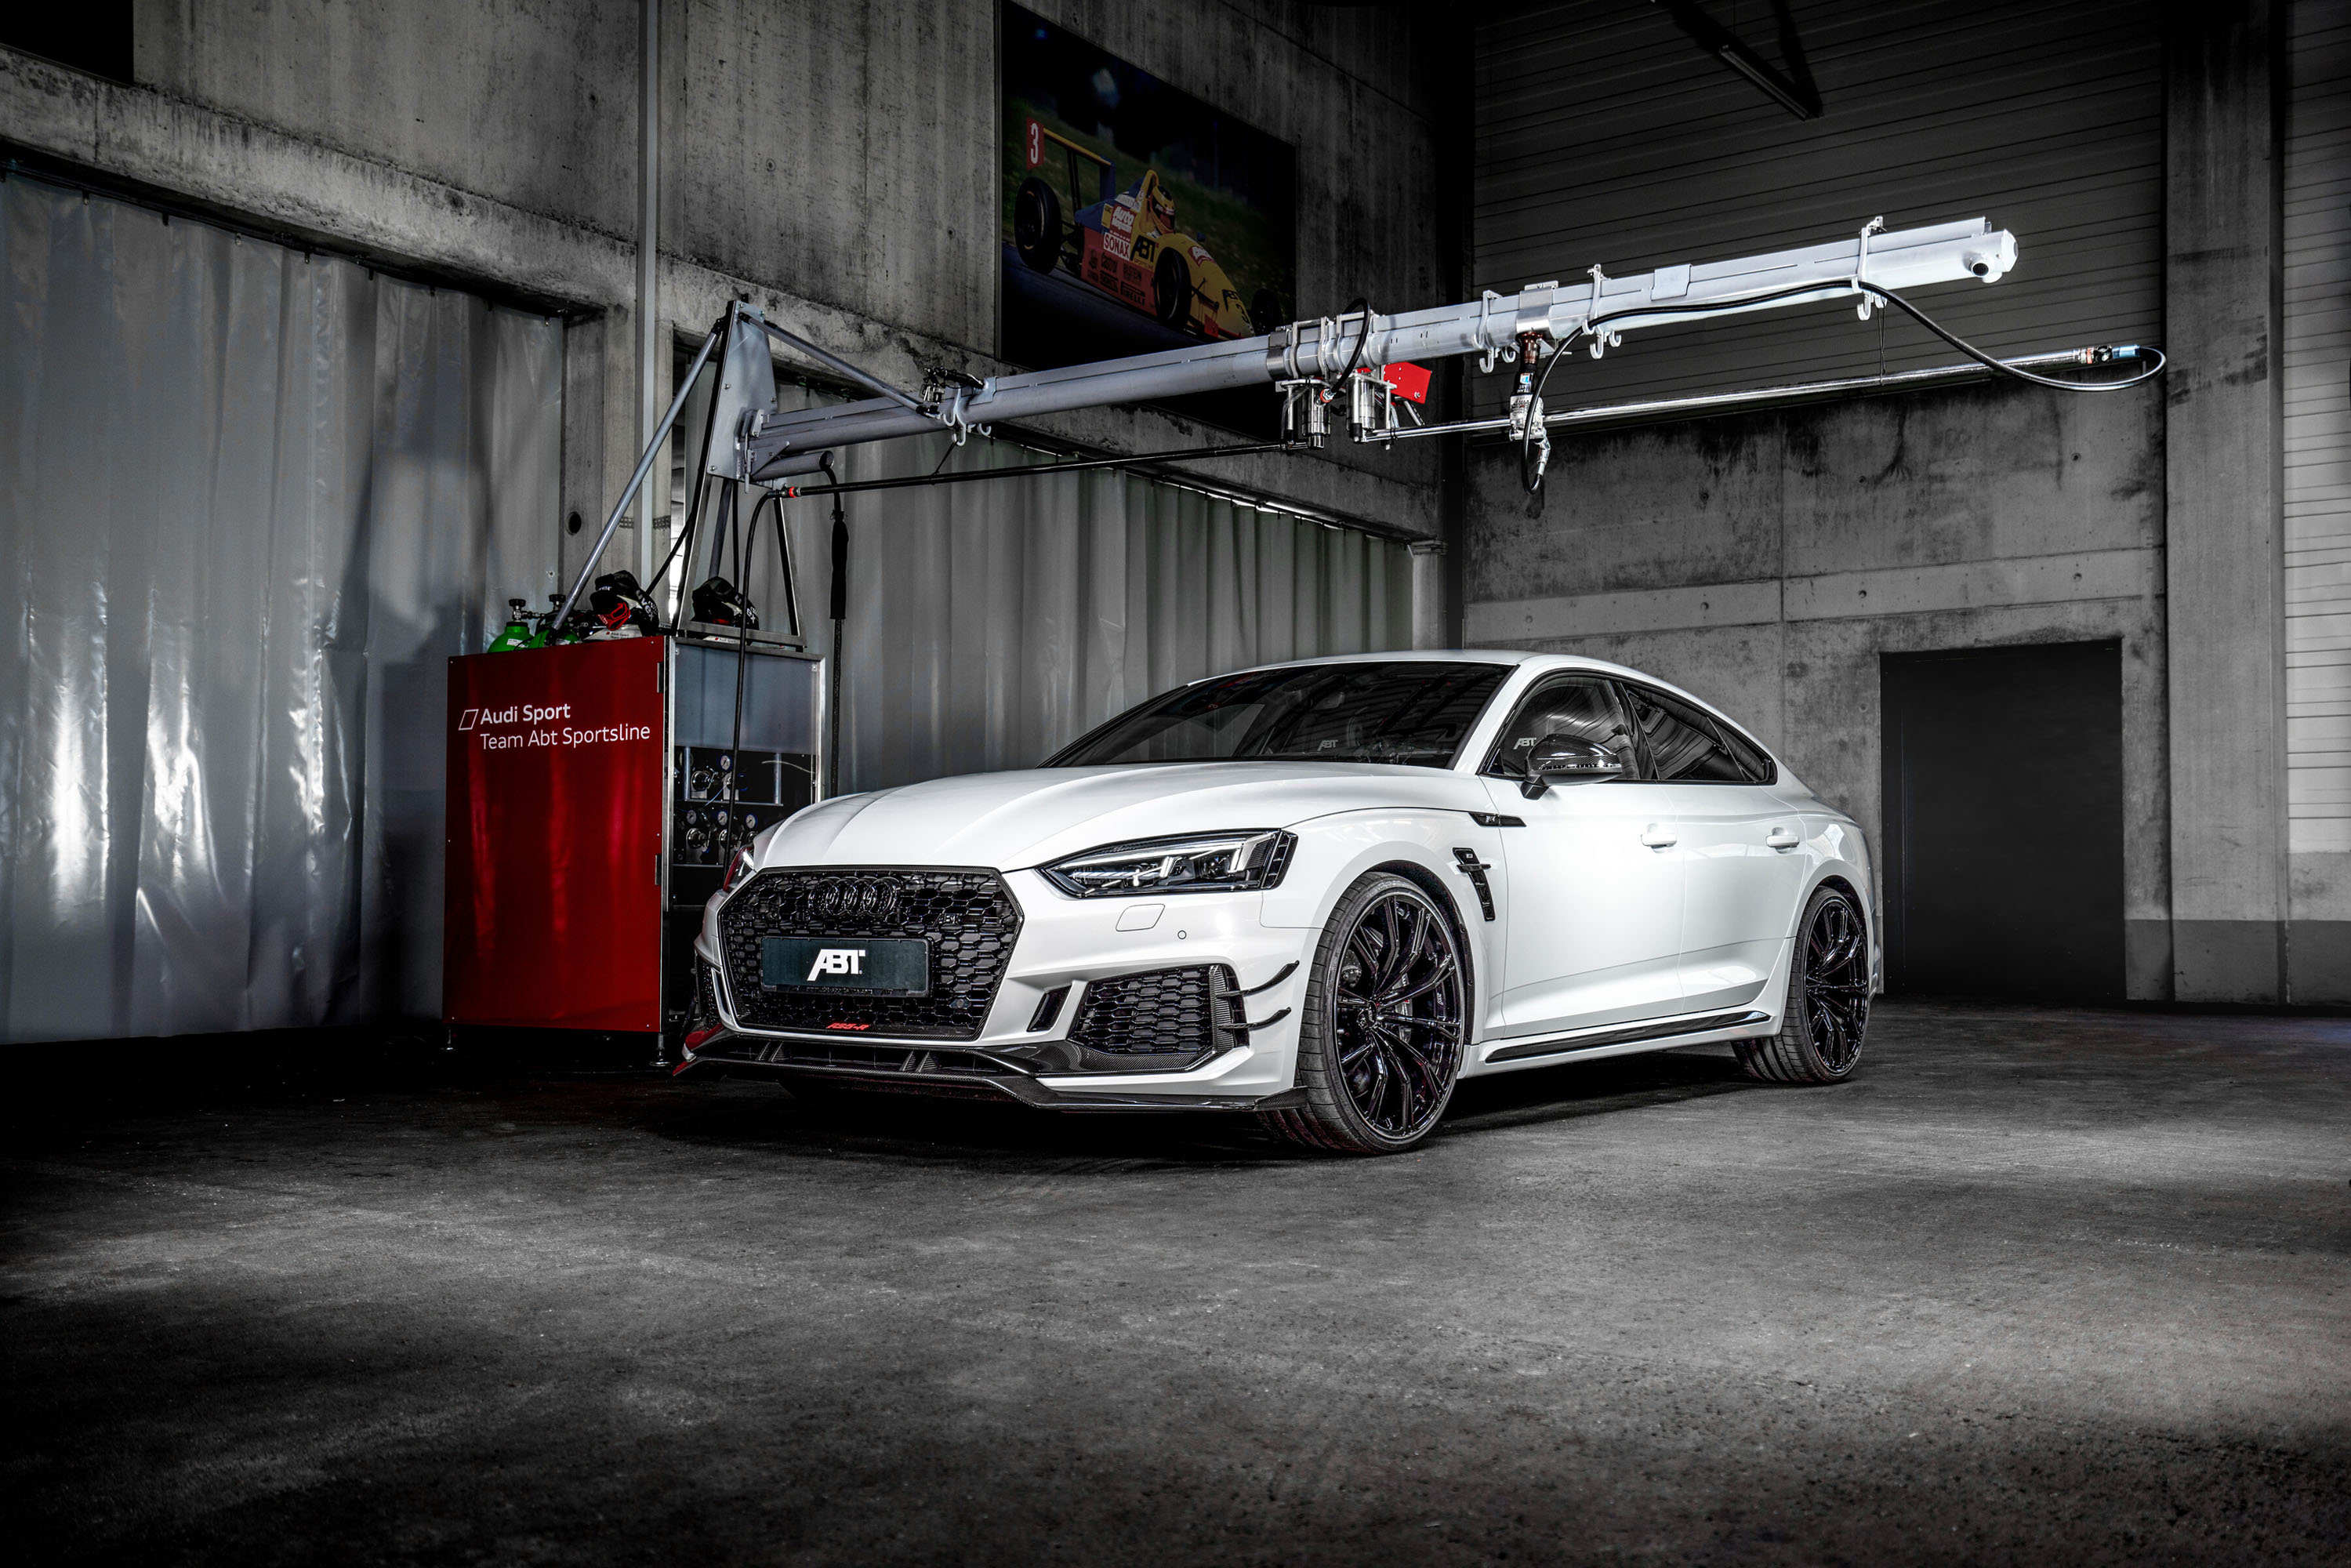 ABT Audi RS5-R Sportback photo #1